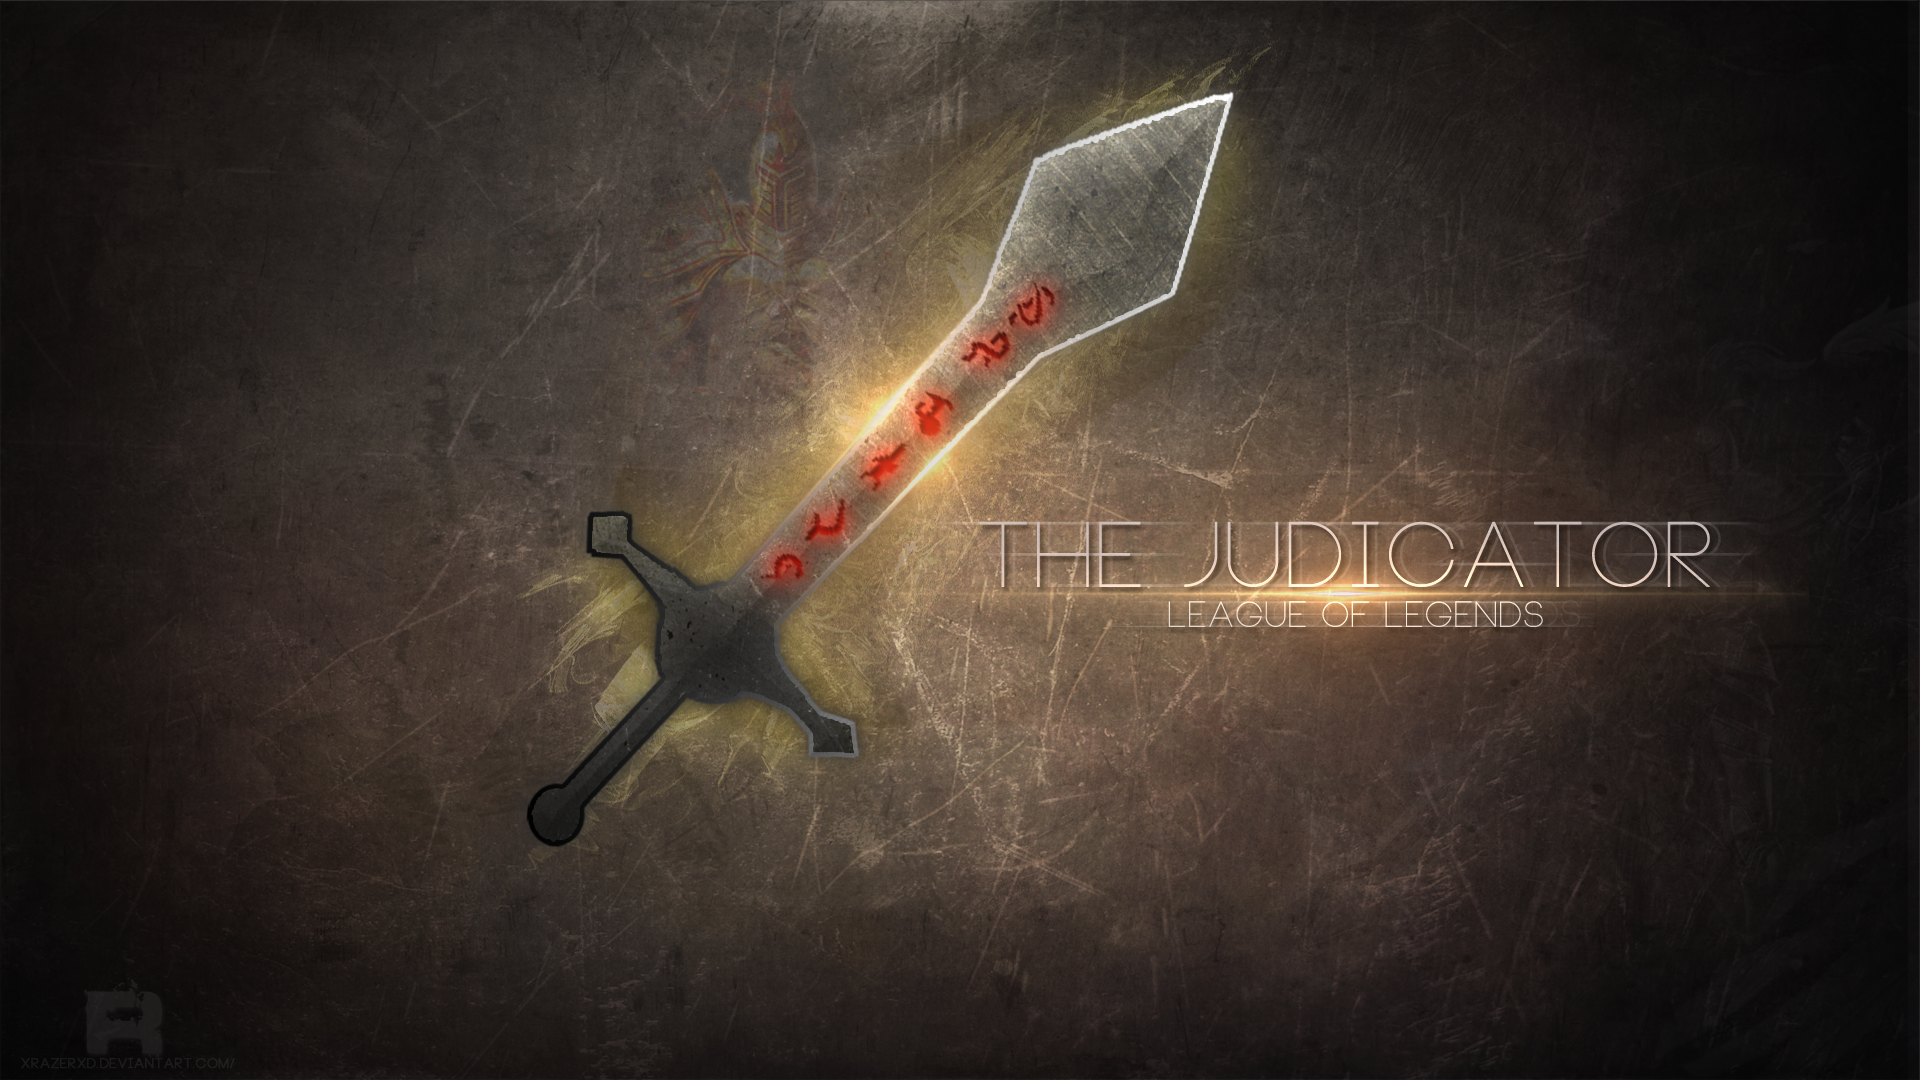 The Judicator wallpaper